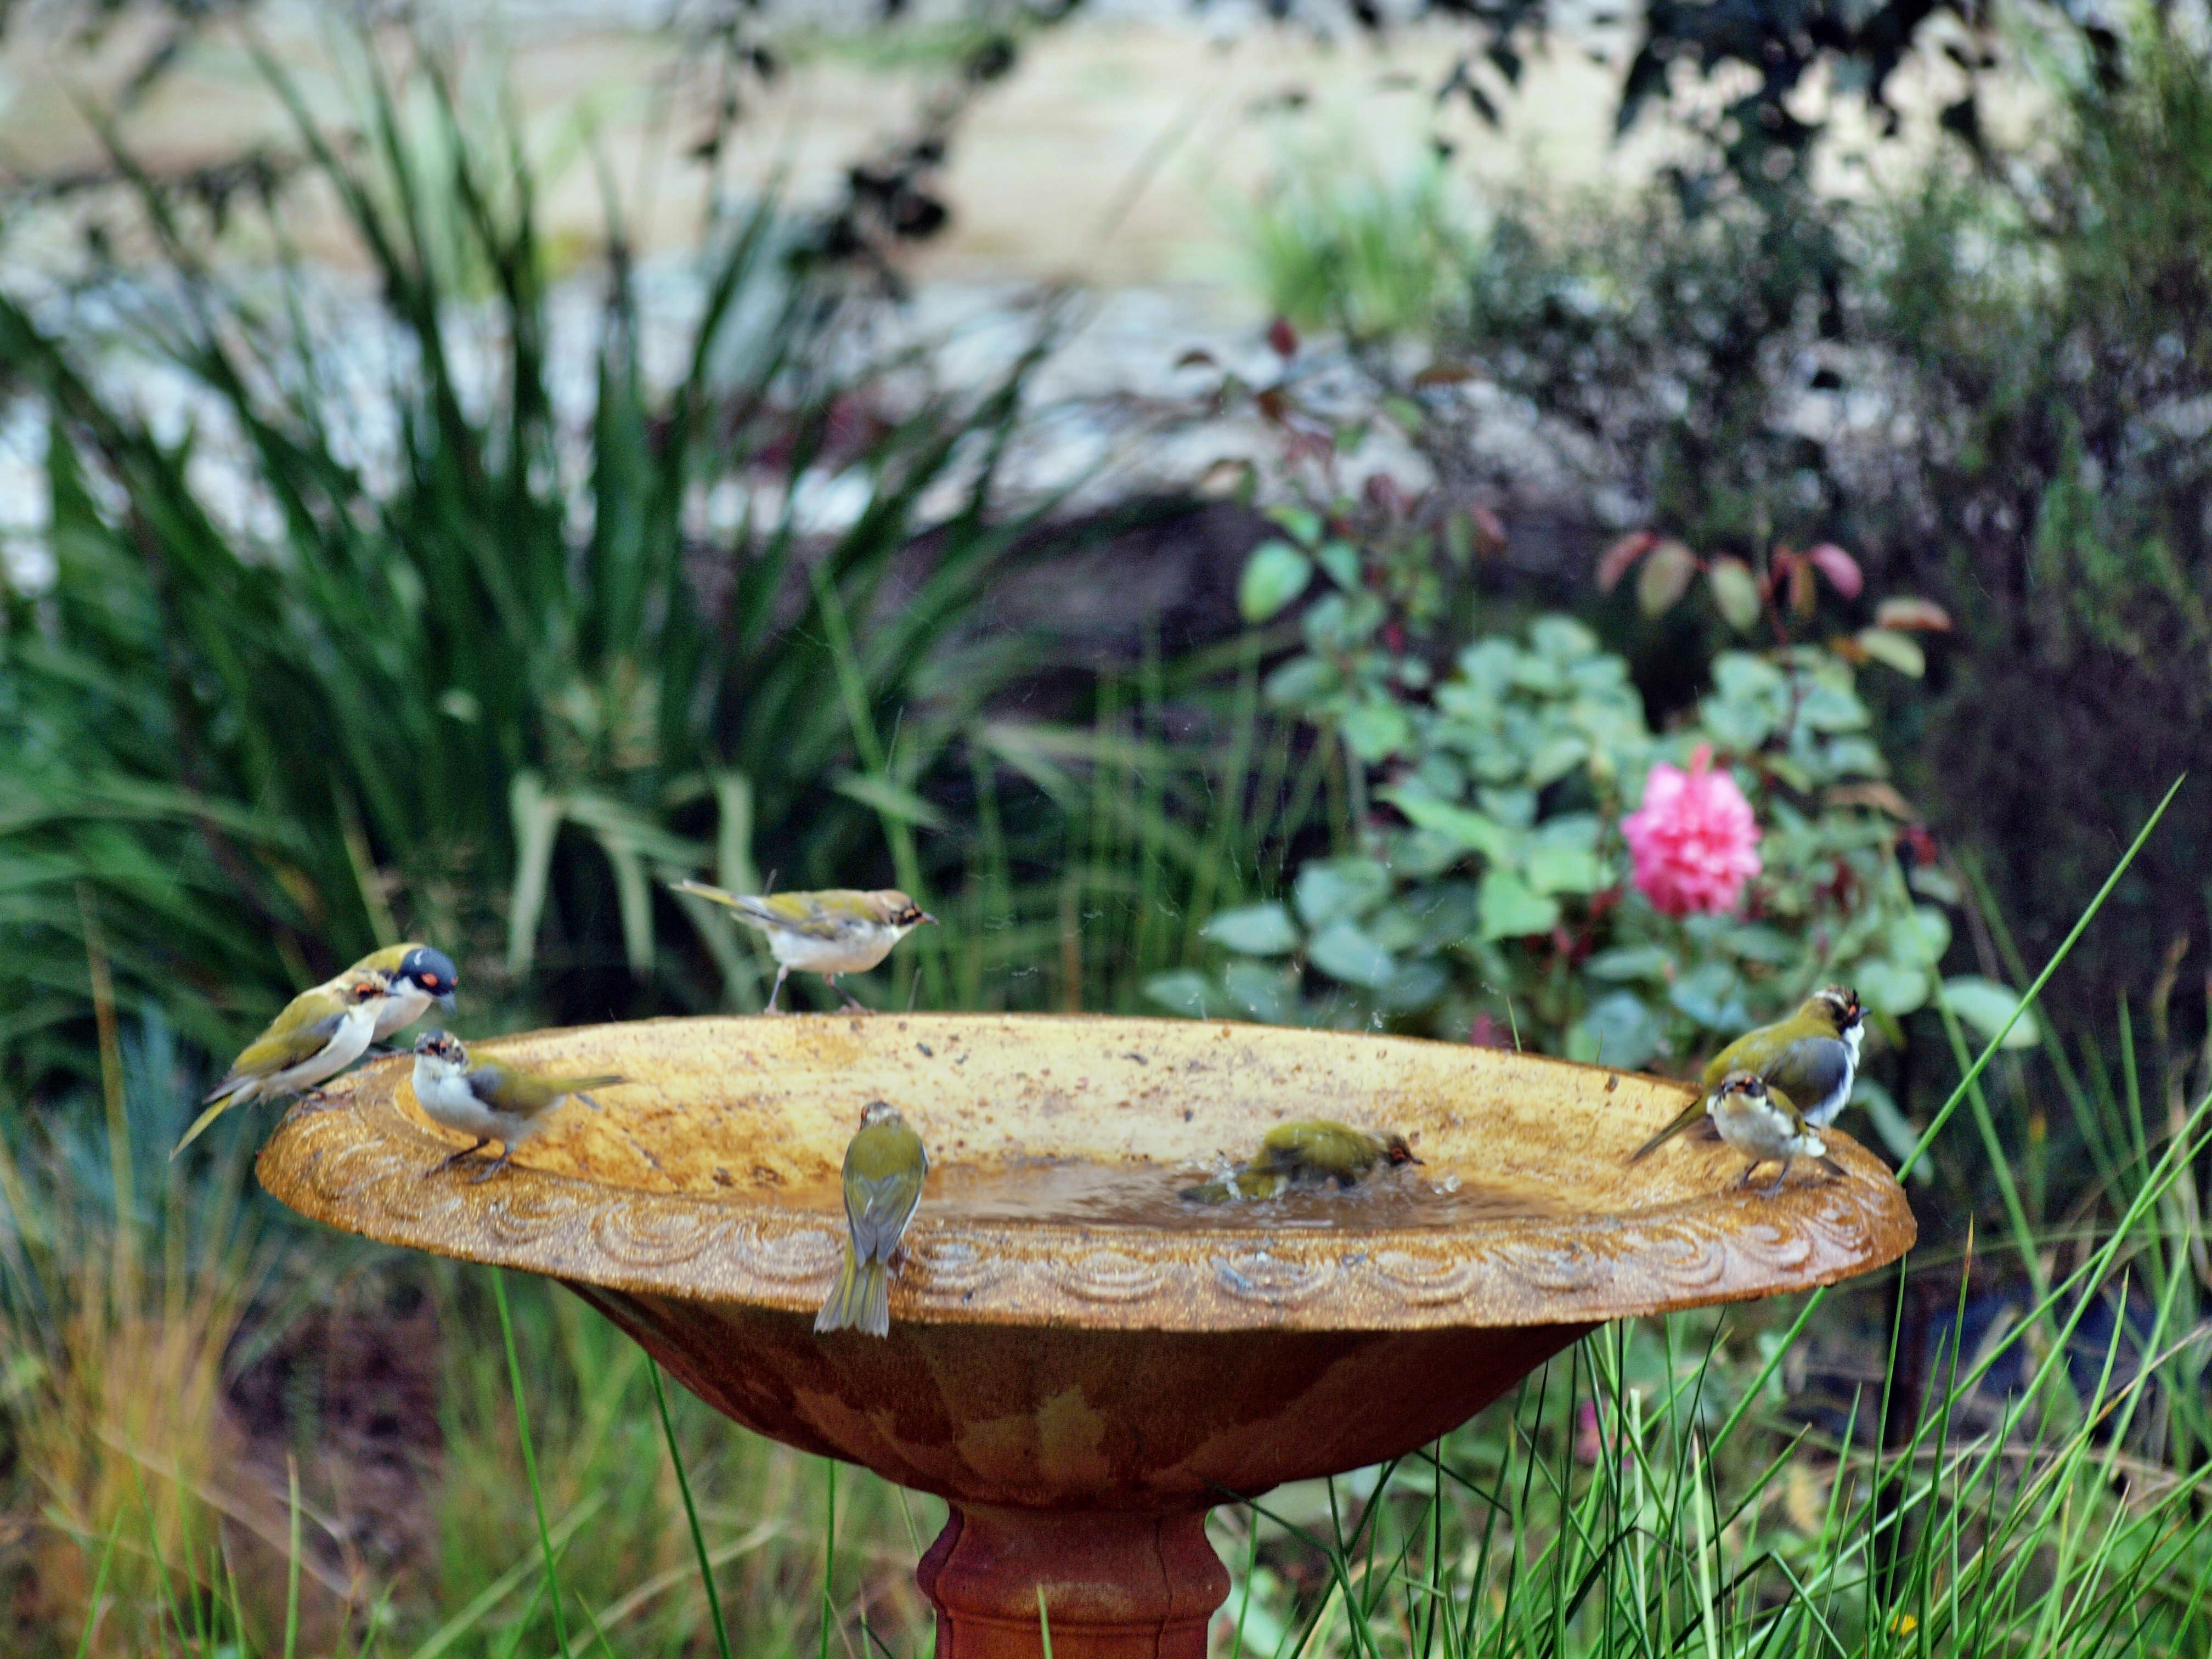 This should be Bird-bath-33.jpeg.  Is it missing?